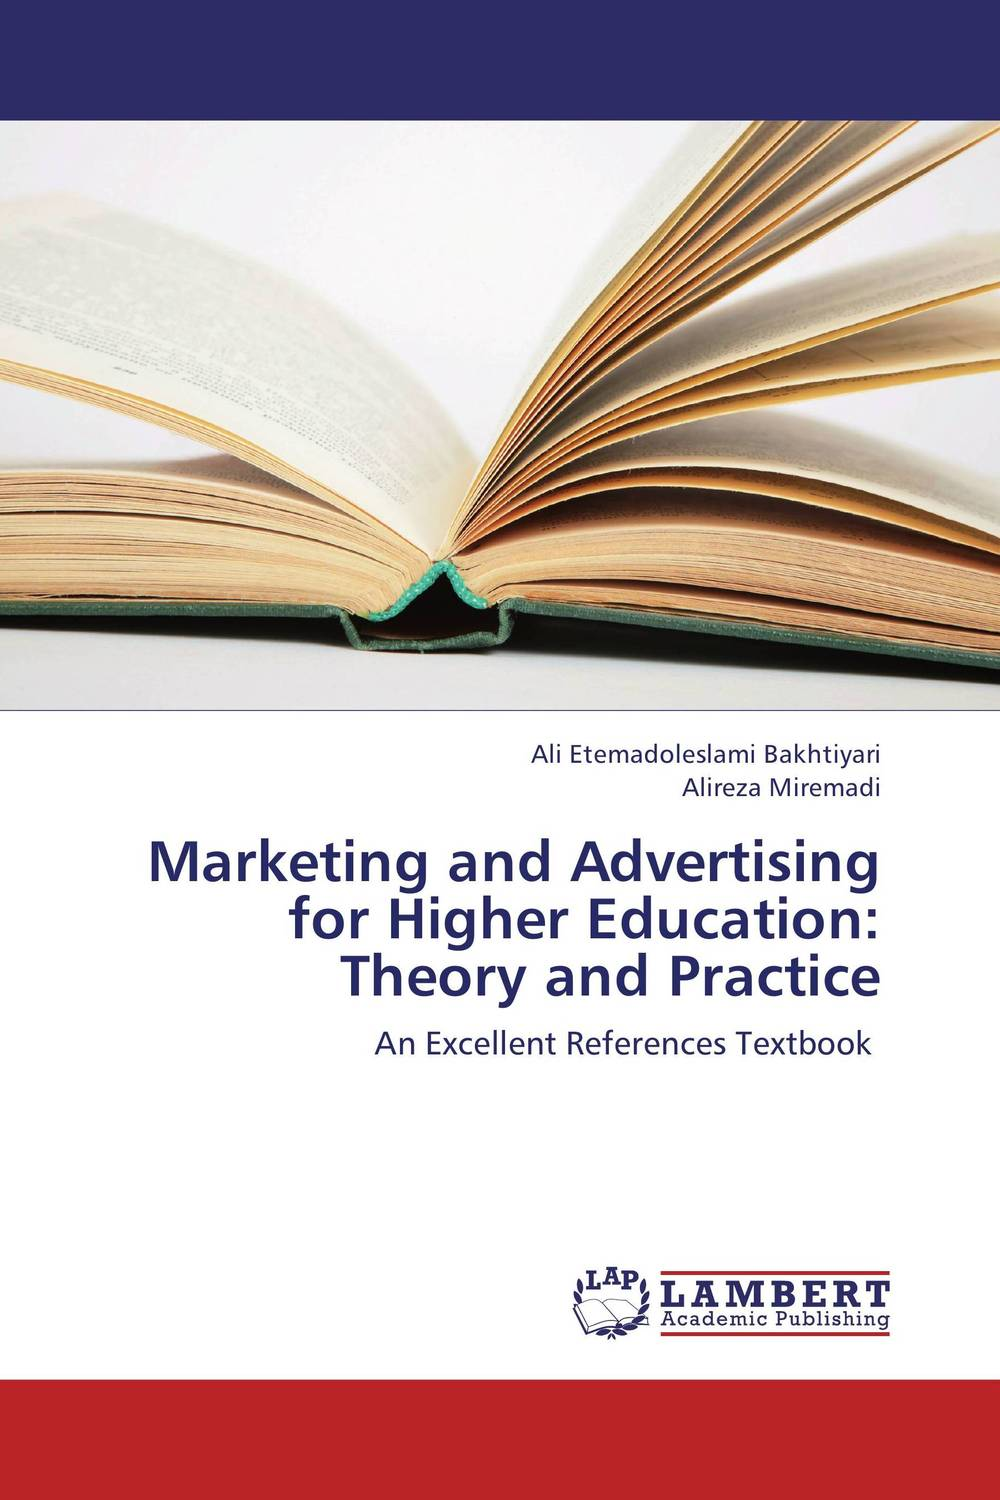 Marketing and Advertising for Higher Education: Theory and Practice fundamentals of physics extended 9th edition international student version with wileyplus set